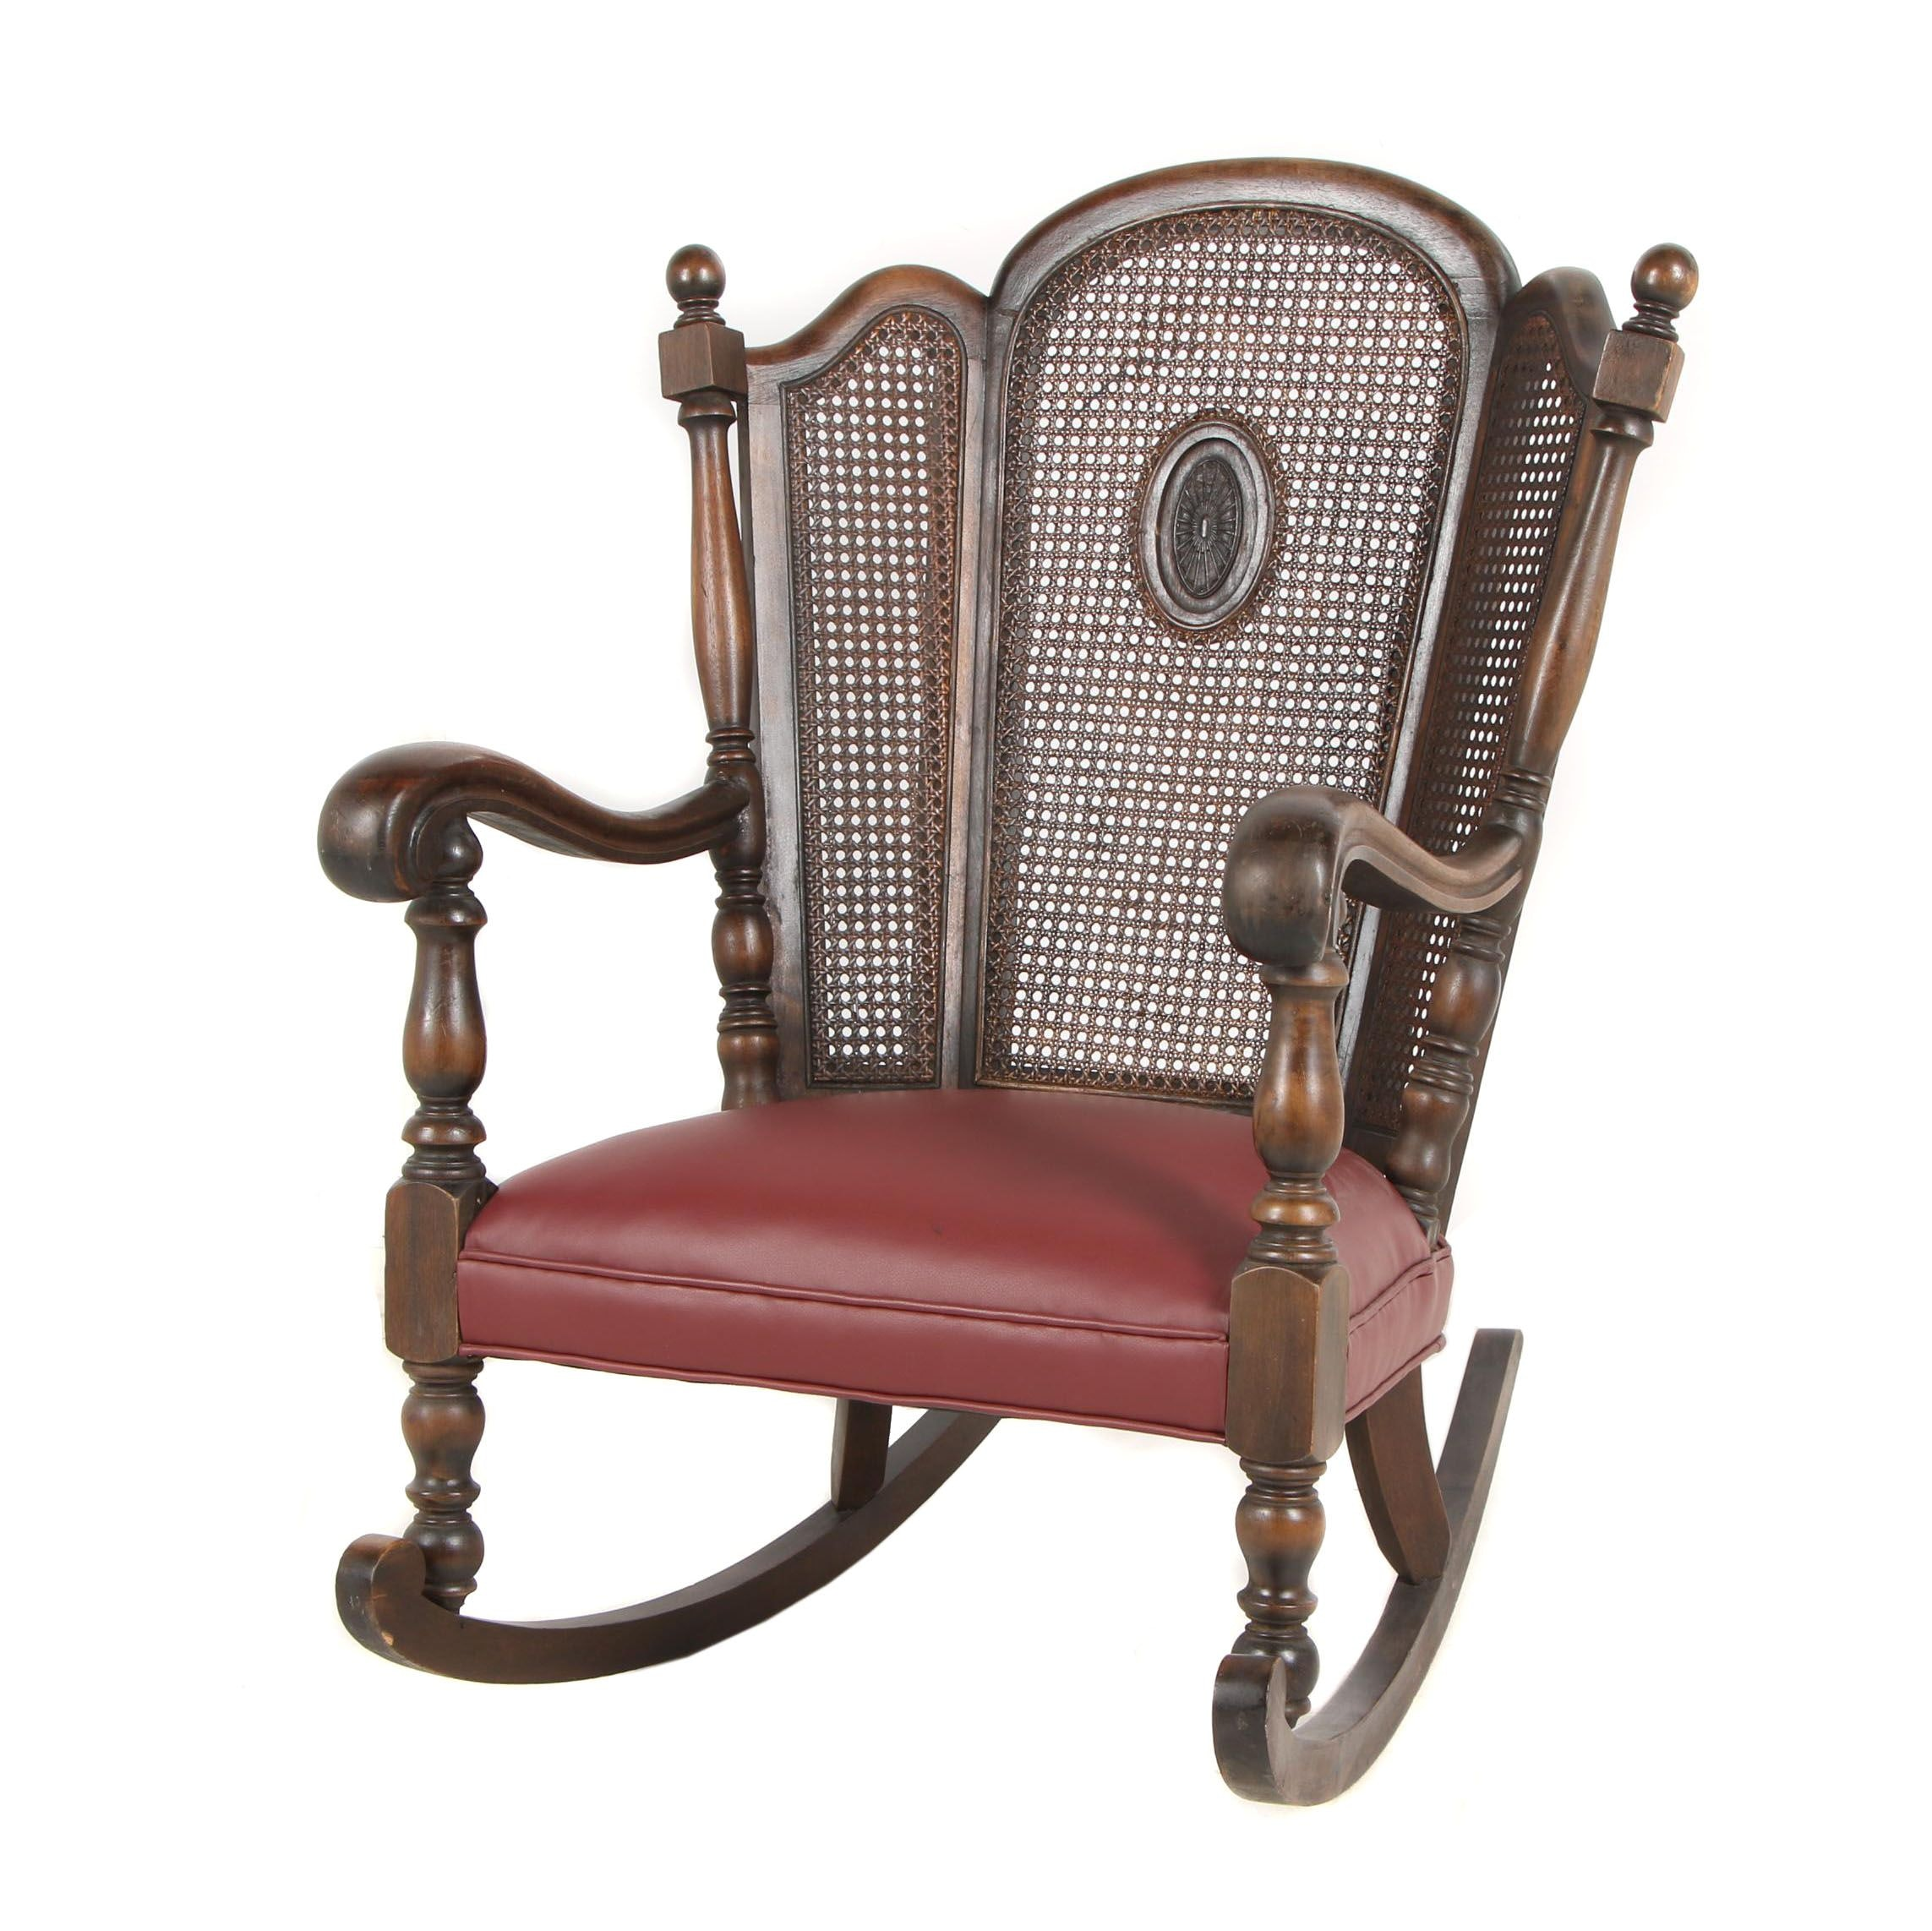 Wooden Cane Back Rocking Chair